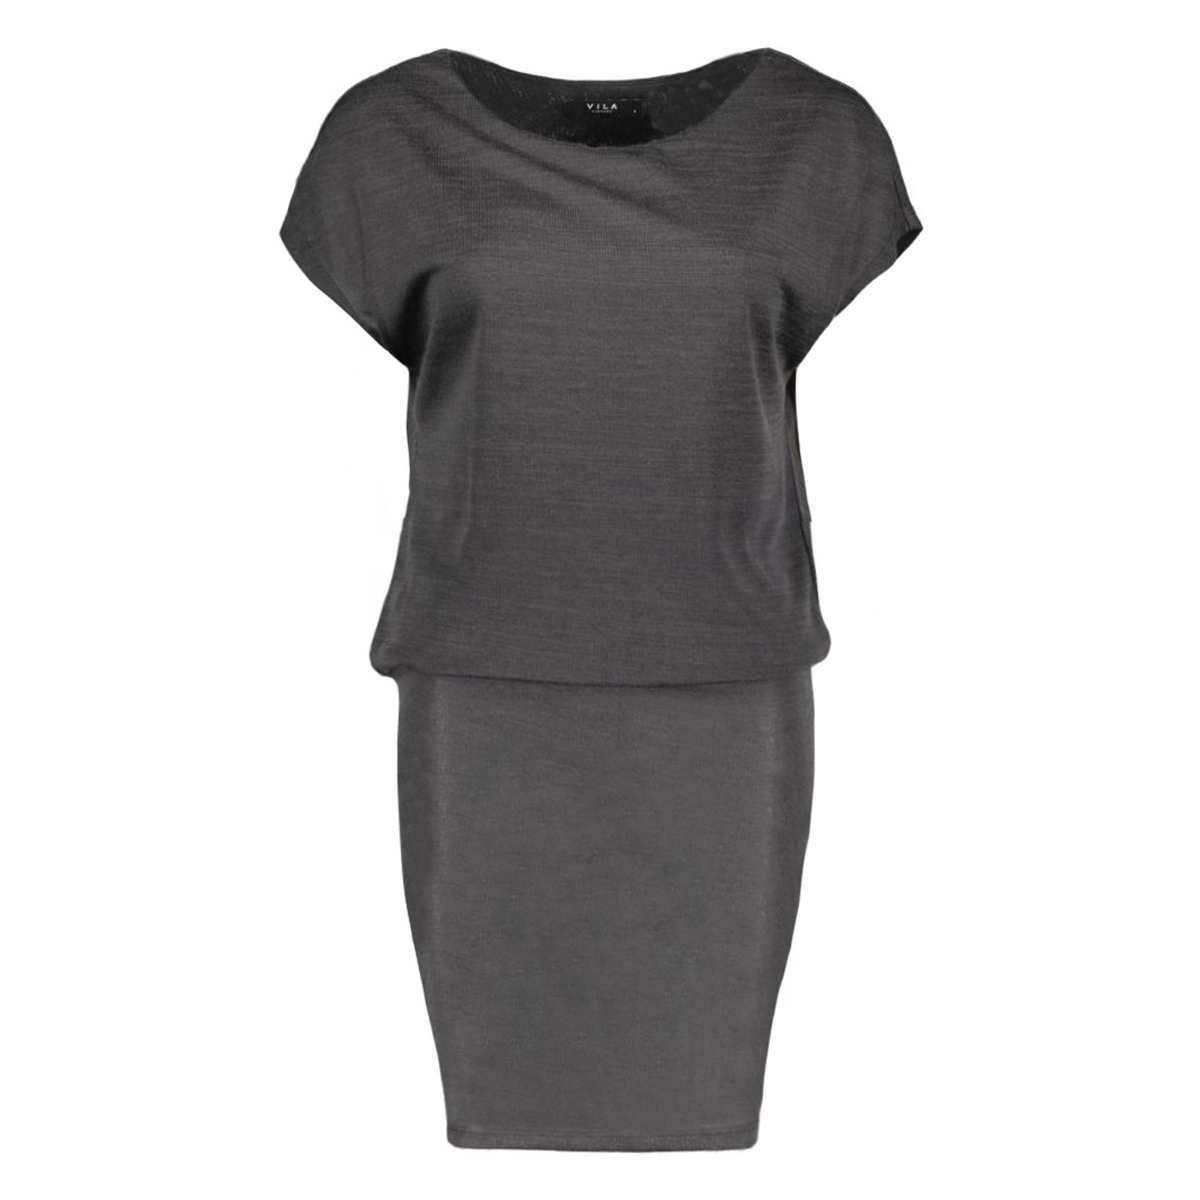 visissa dress 14038615 vila jurk dark grey melange